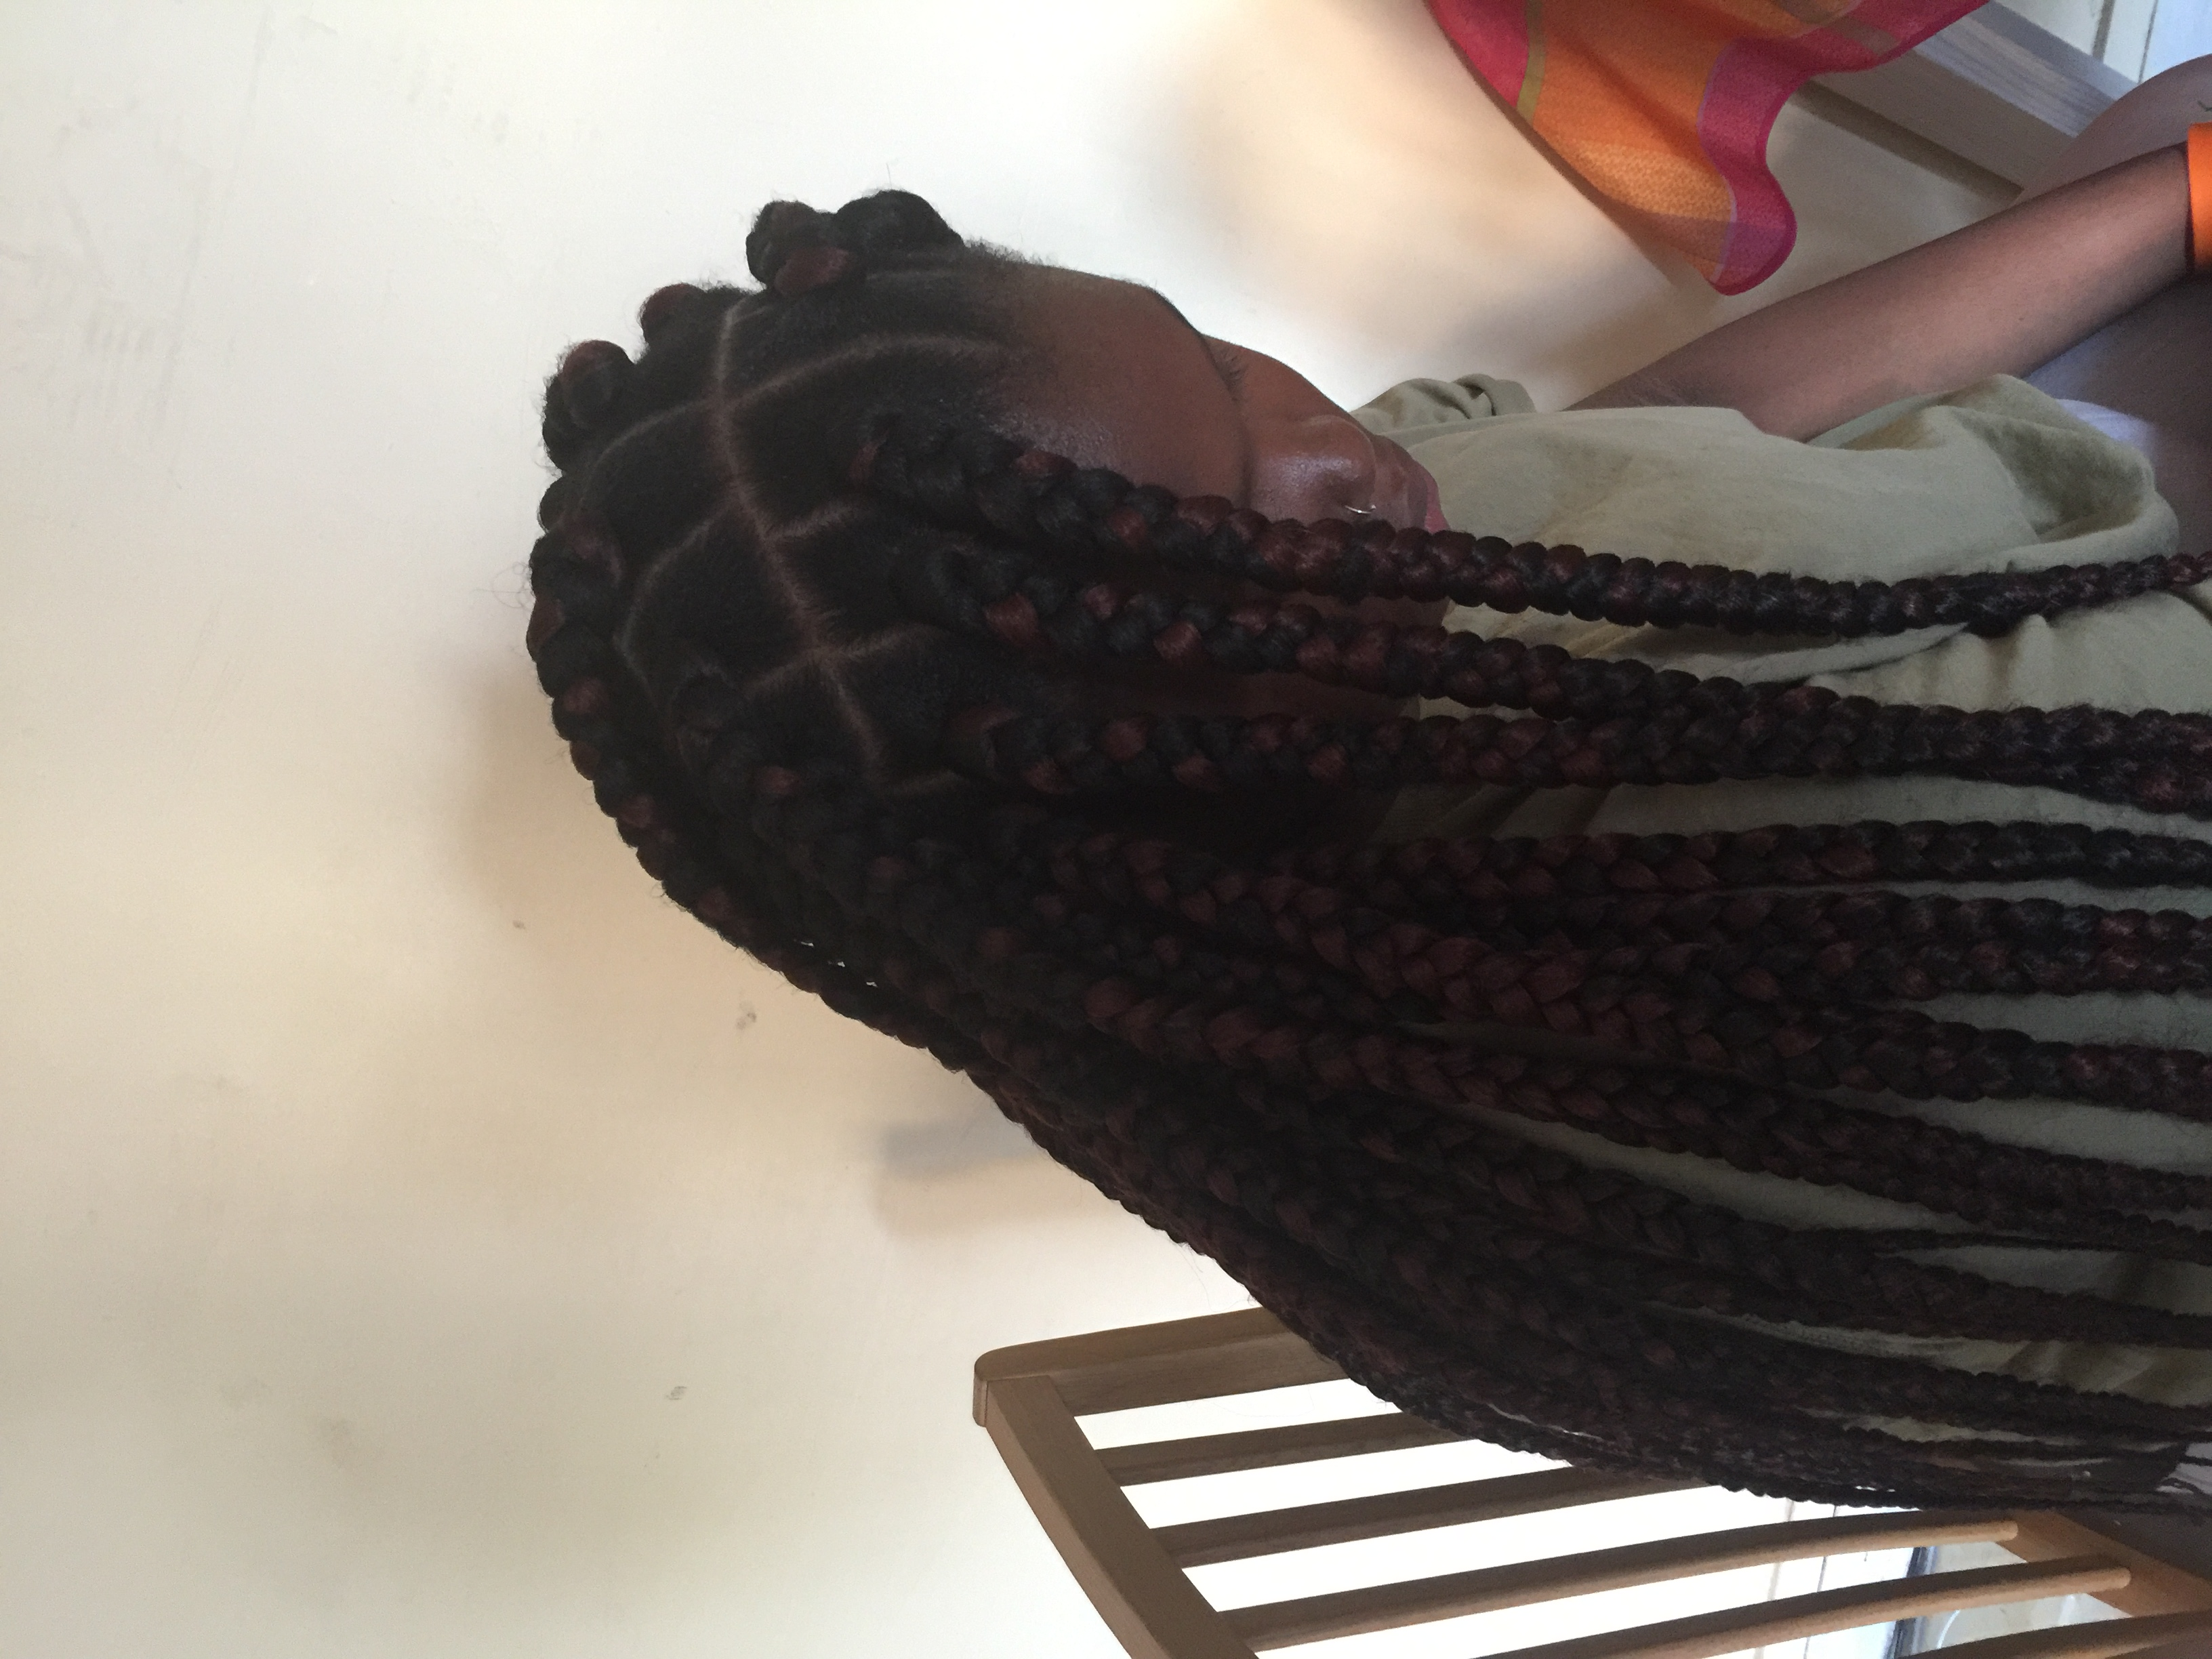 salon de coiffure afro tresse tresses box braids crochet braids vanilles tissages paris 75 77 78 91 92 93 94 95 NWGQYMKL